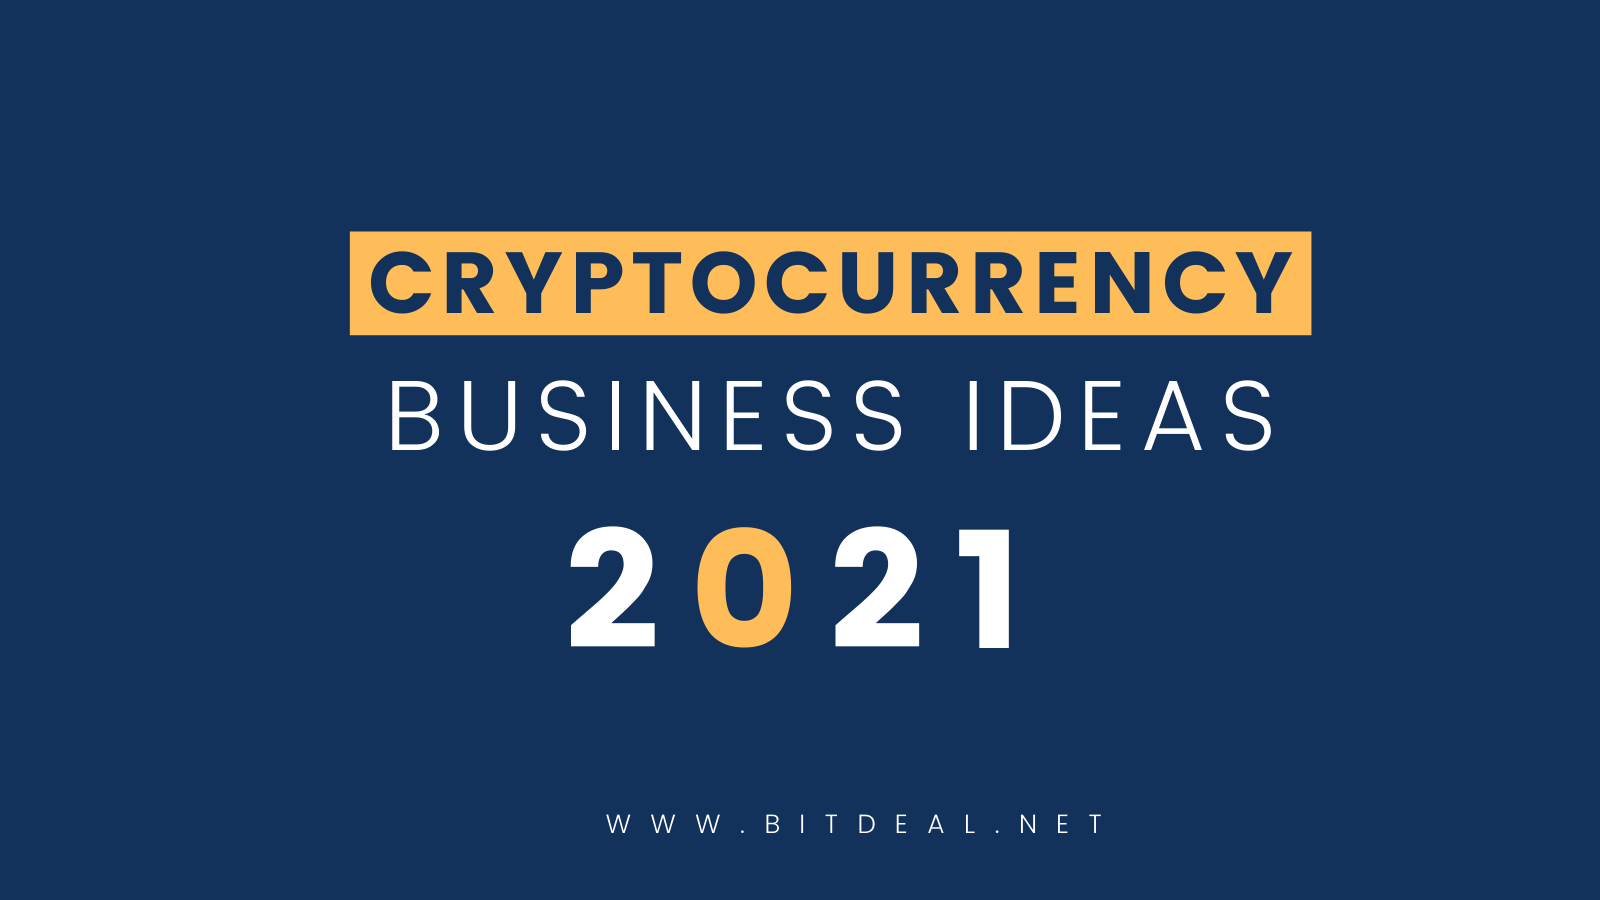 Top Most Cryptocurrency Business Ideas 2021